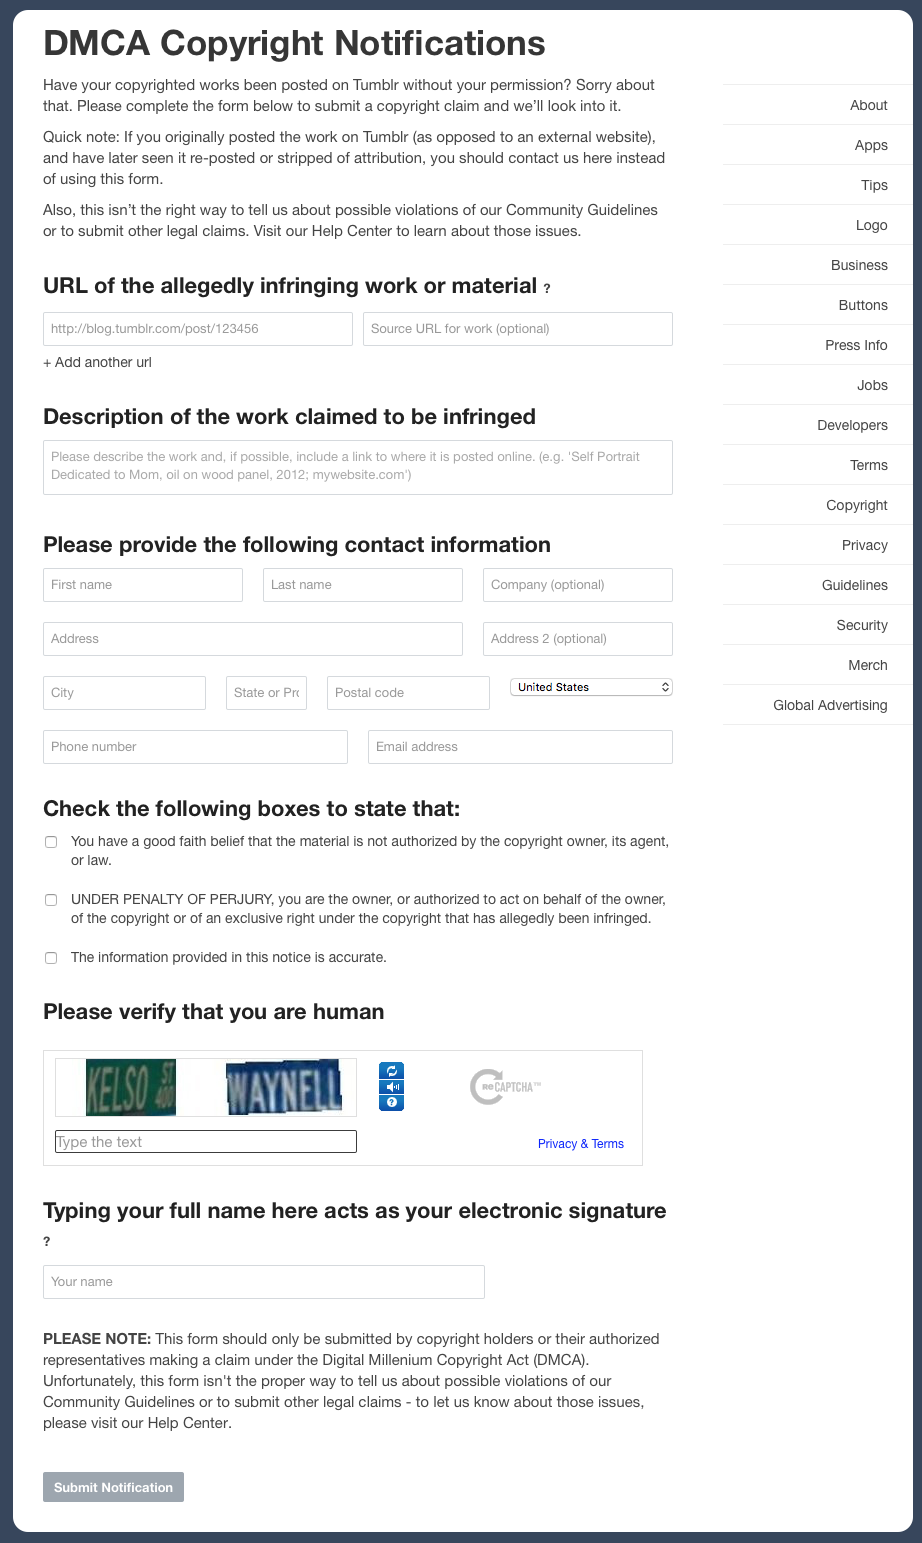 DMCA Copyright Notifications | Tumblr